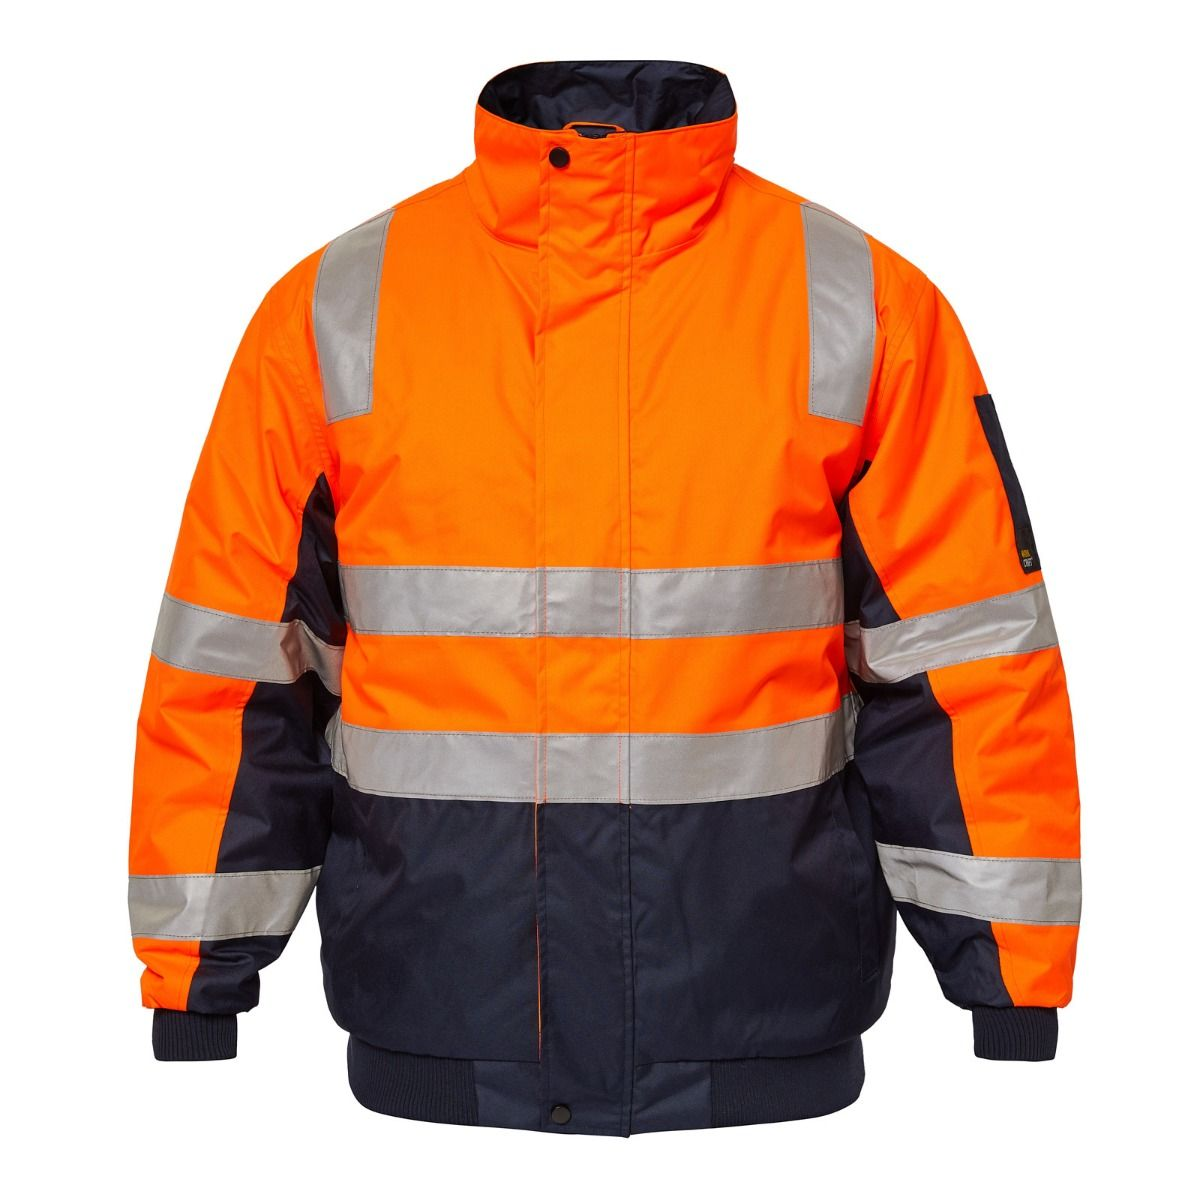 WorkCraft Typhoon Hi Vis Taped Bomber Jacket